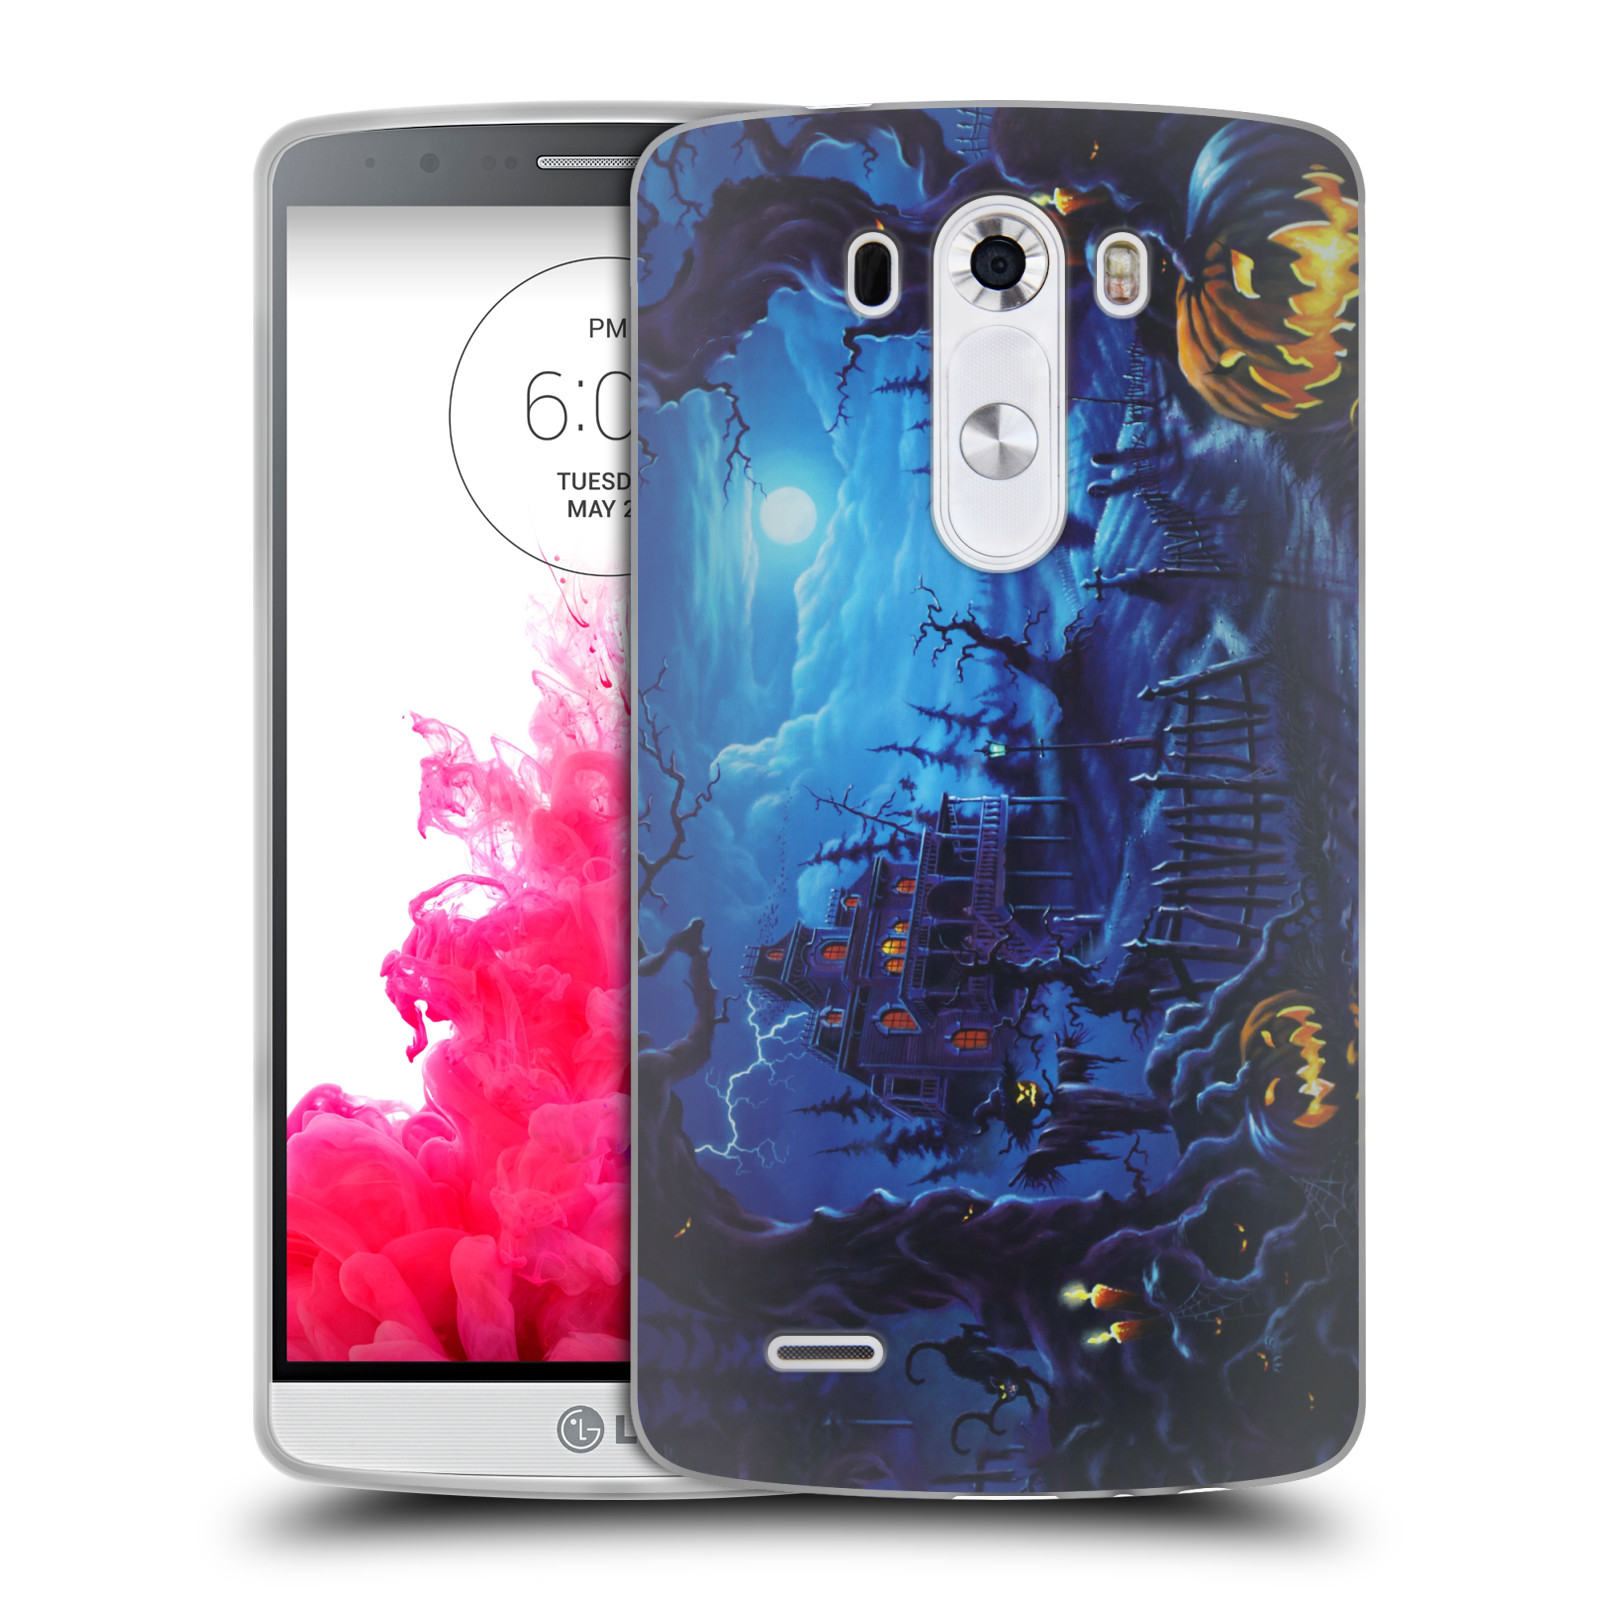 OFFICIAL-GENO-PEOPLES-ART-HALLOWEEN-SOFT-GEL-CASE-FOR-LG-PHONES-1